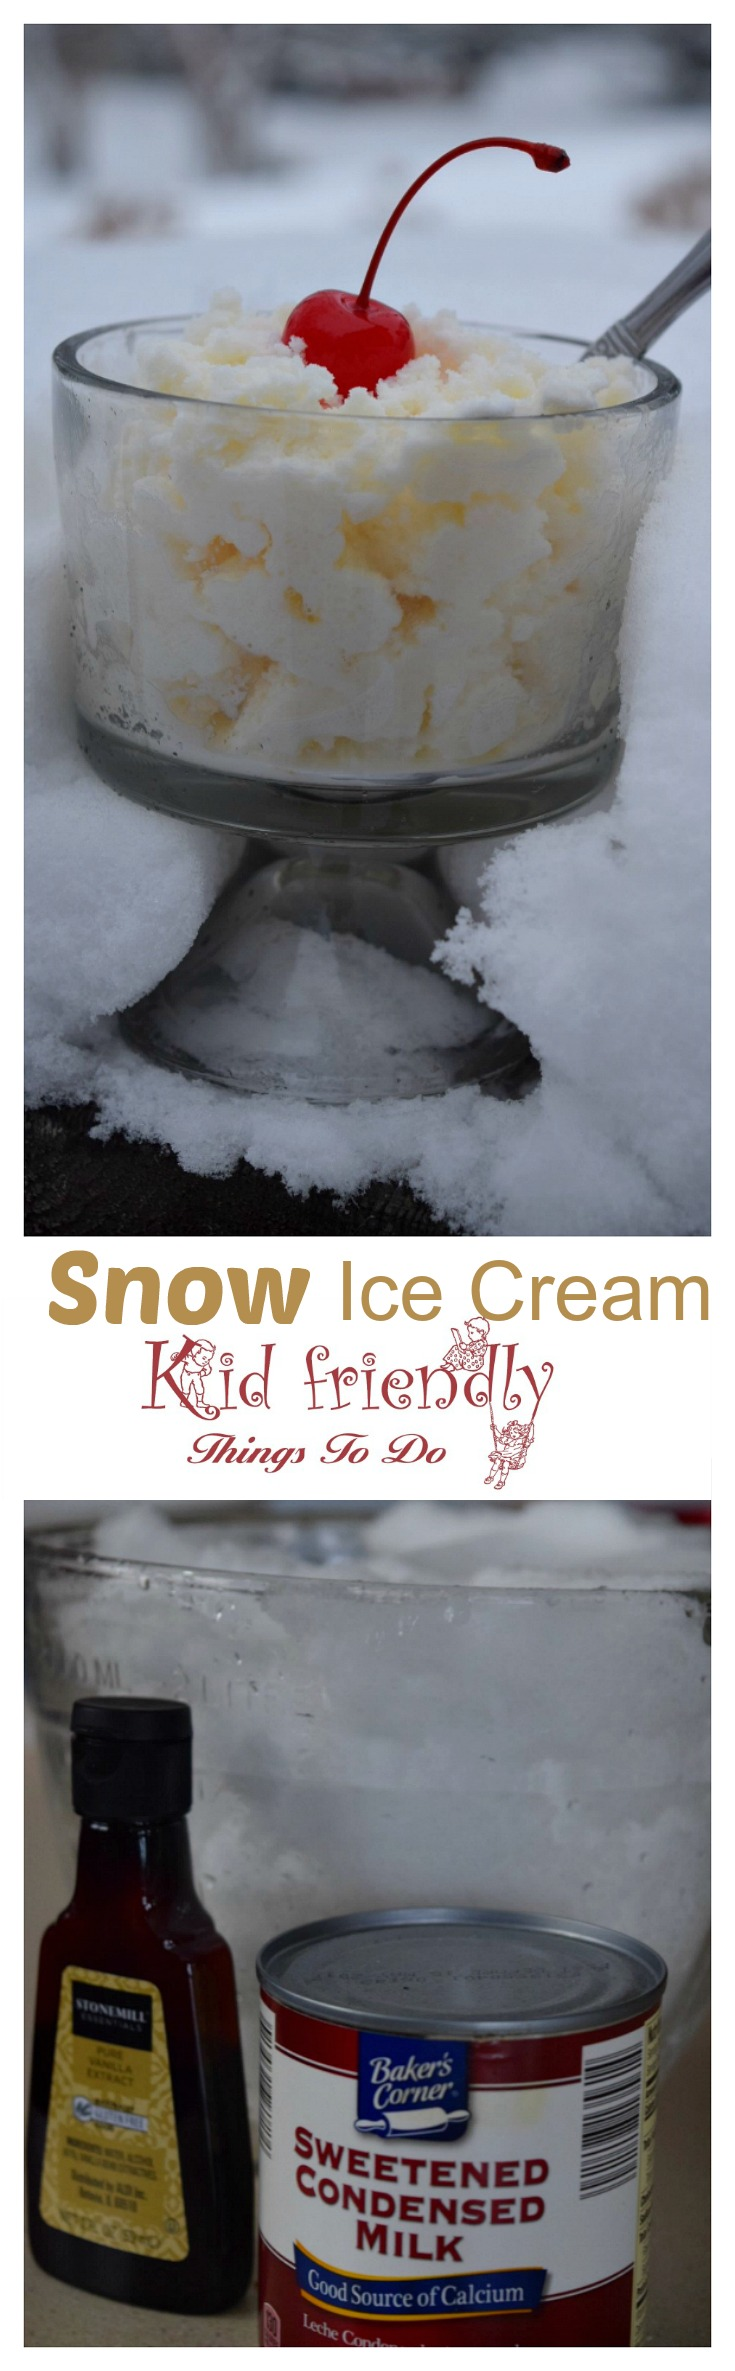 Simple and Delicious Three Ingredient Snow Ice Cream Recipe made with Sweetened Condensed Milk - This is so much fun to do with the kids and so easy to make. www.kidfriendlythingstodo.com